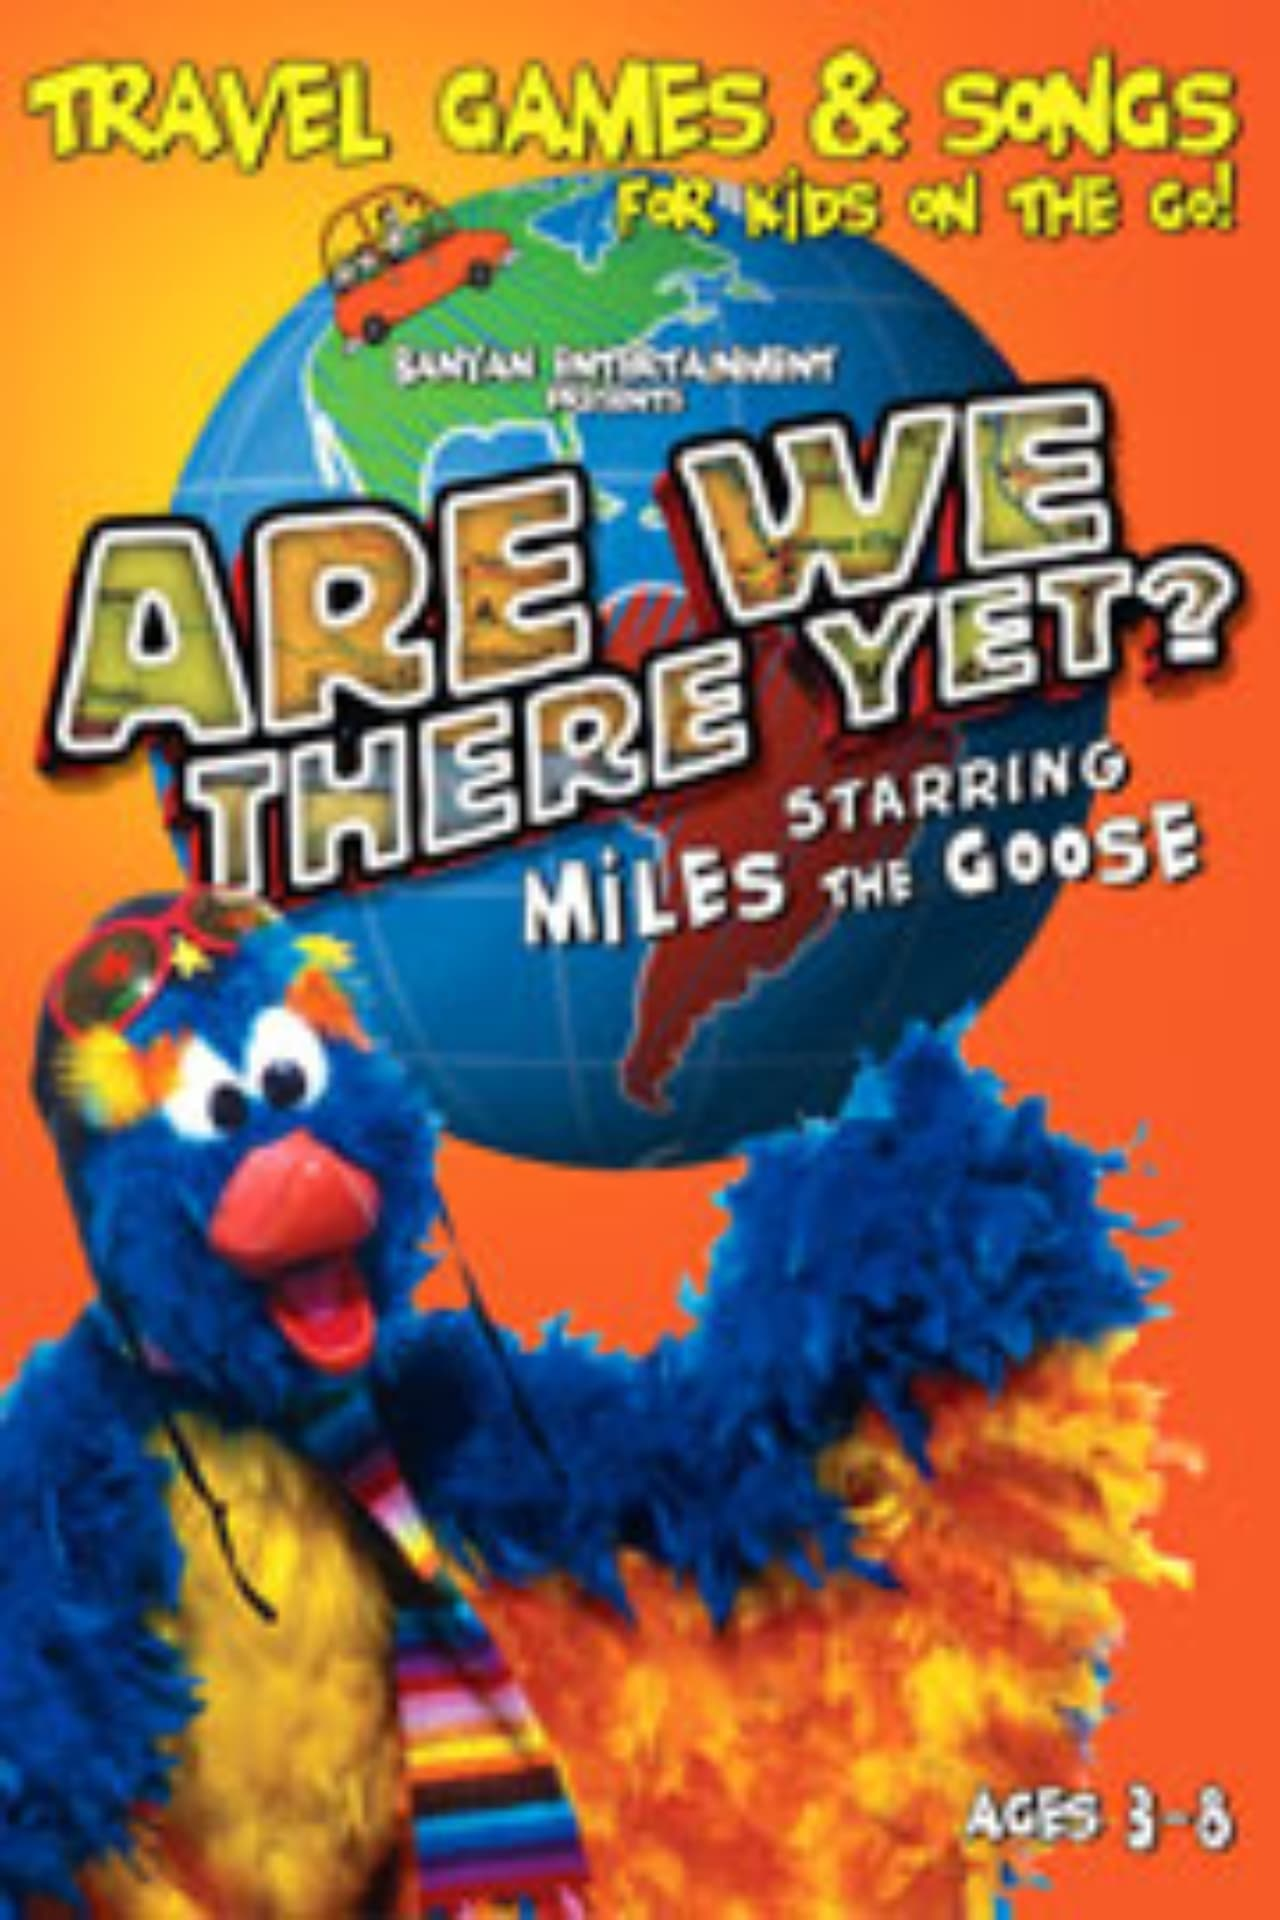 Are We There Yet? Starring Miles the Goose